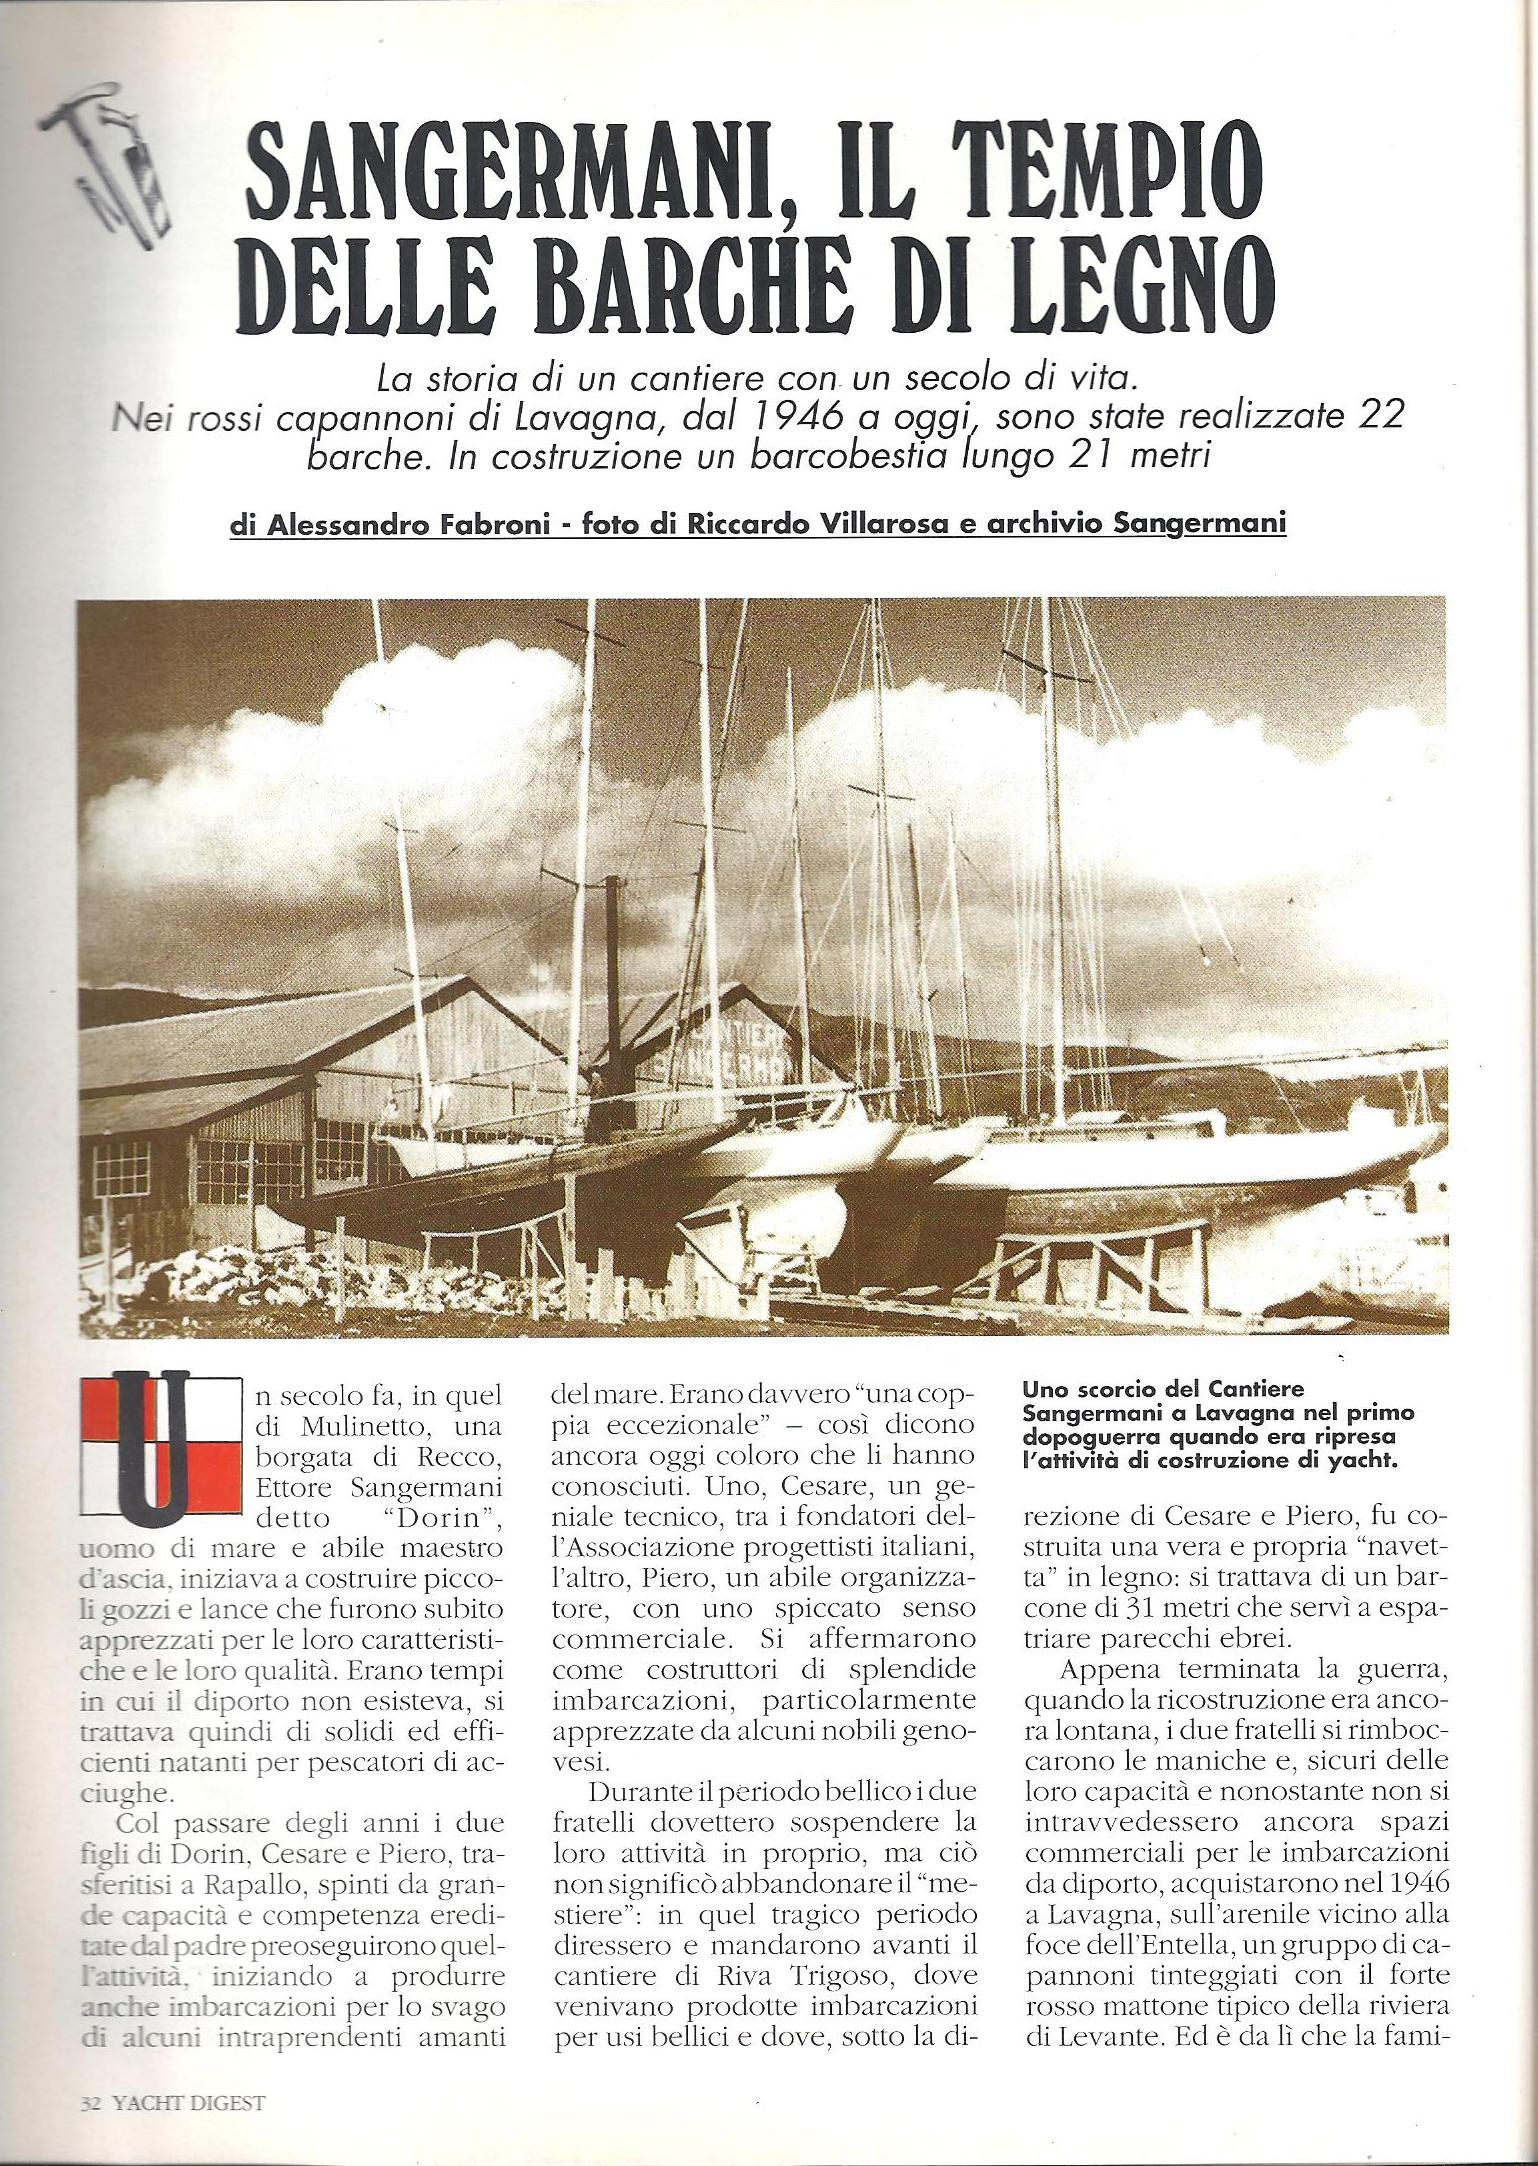 1989 08 PRESS SANGERMANI Yacht Digest (1).jpg